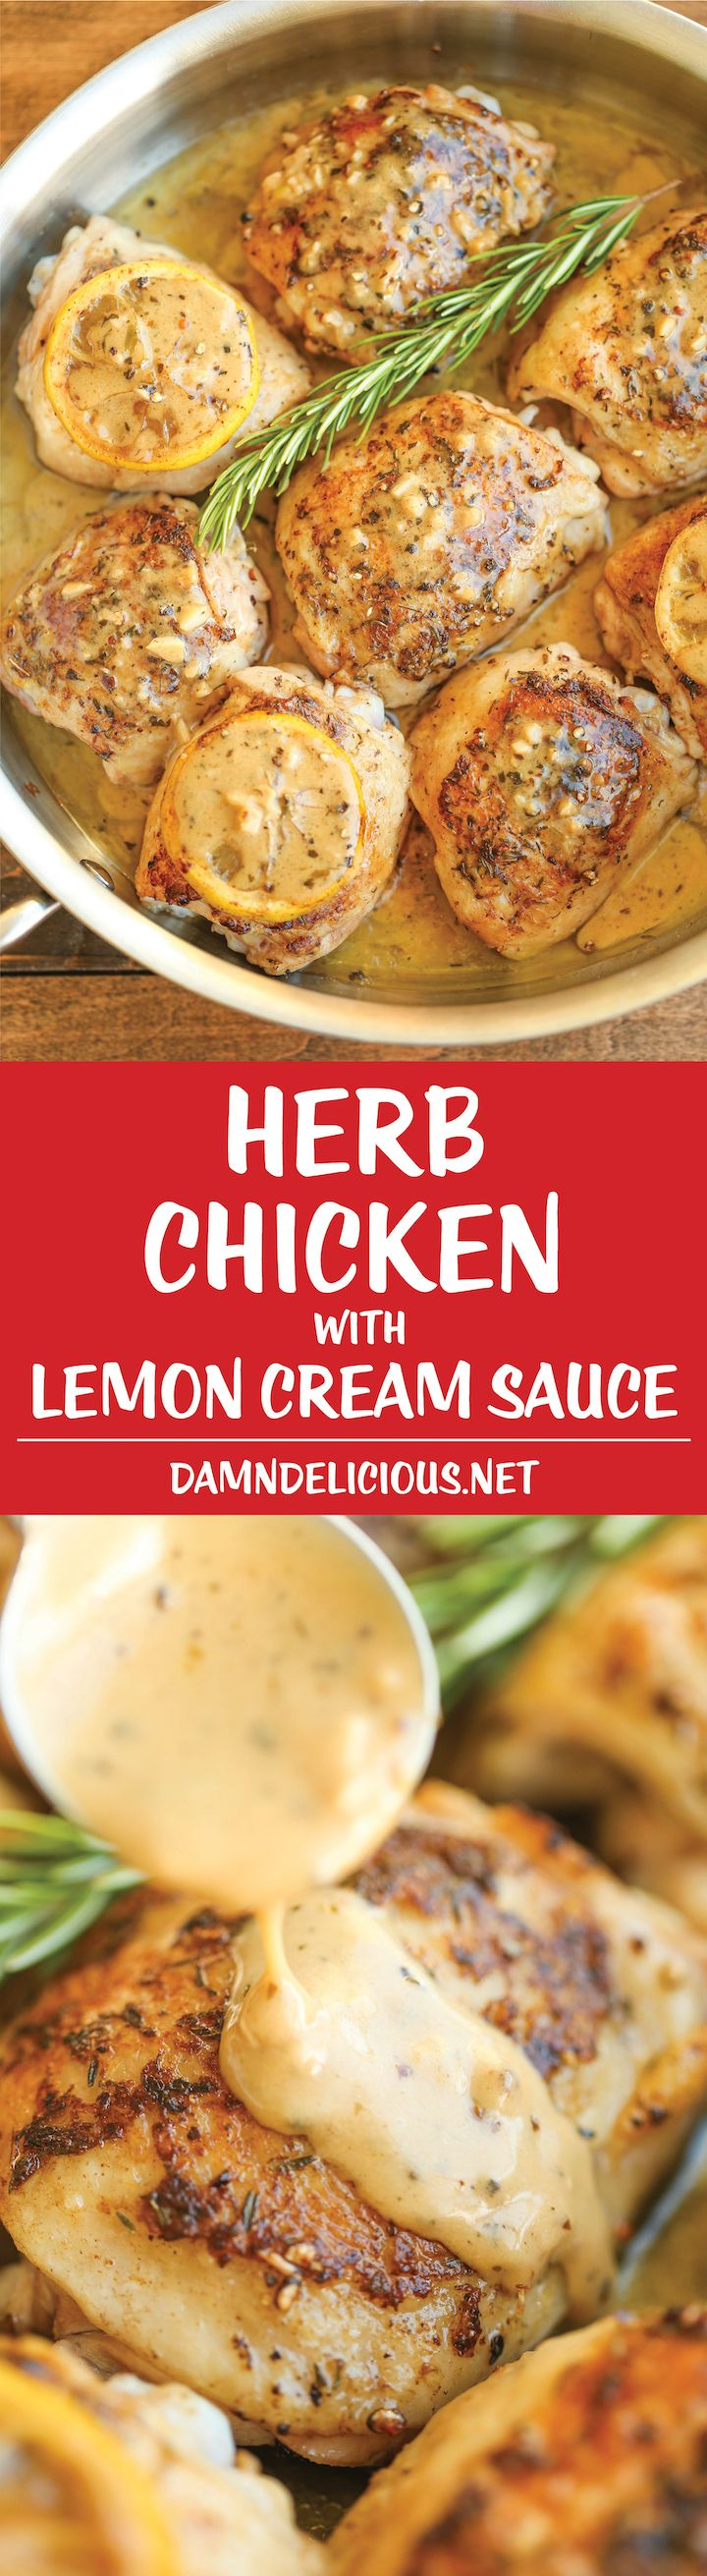 Herb Chicken With Lemon Cream Sauce Recipe Chicken Recipes Recipes Cooking Recipes